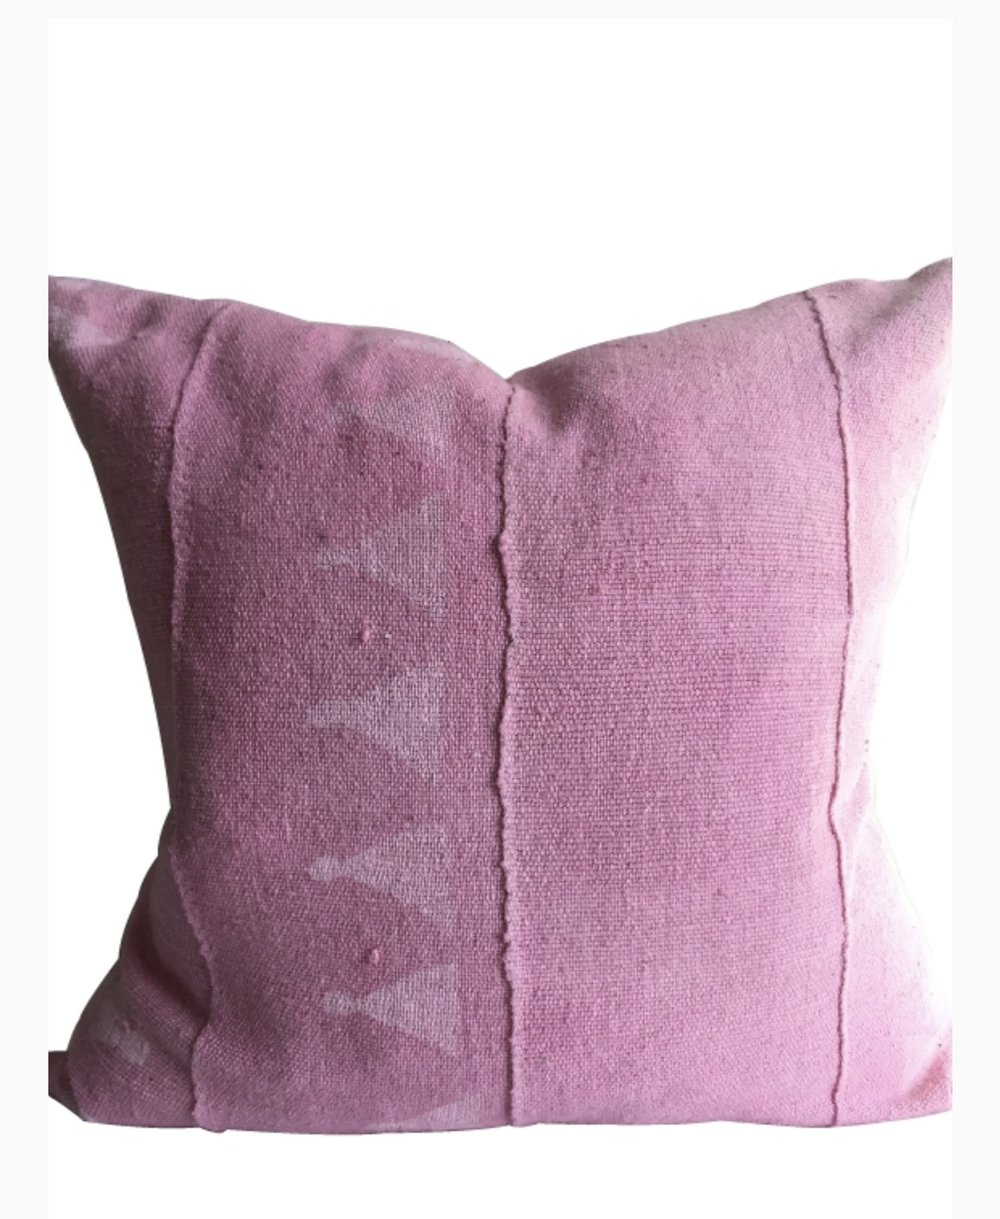 Nashville Pillow Company